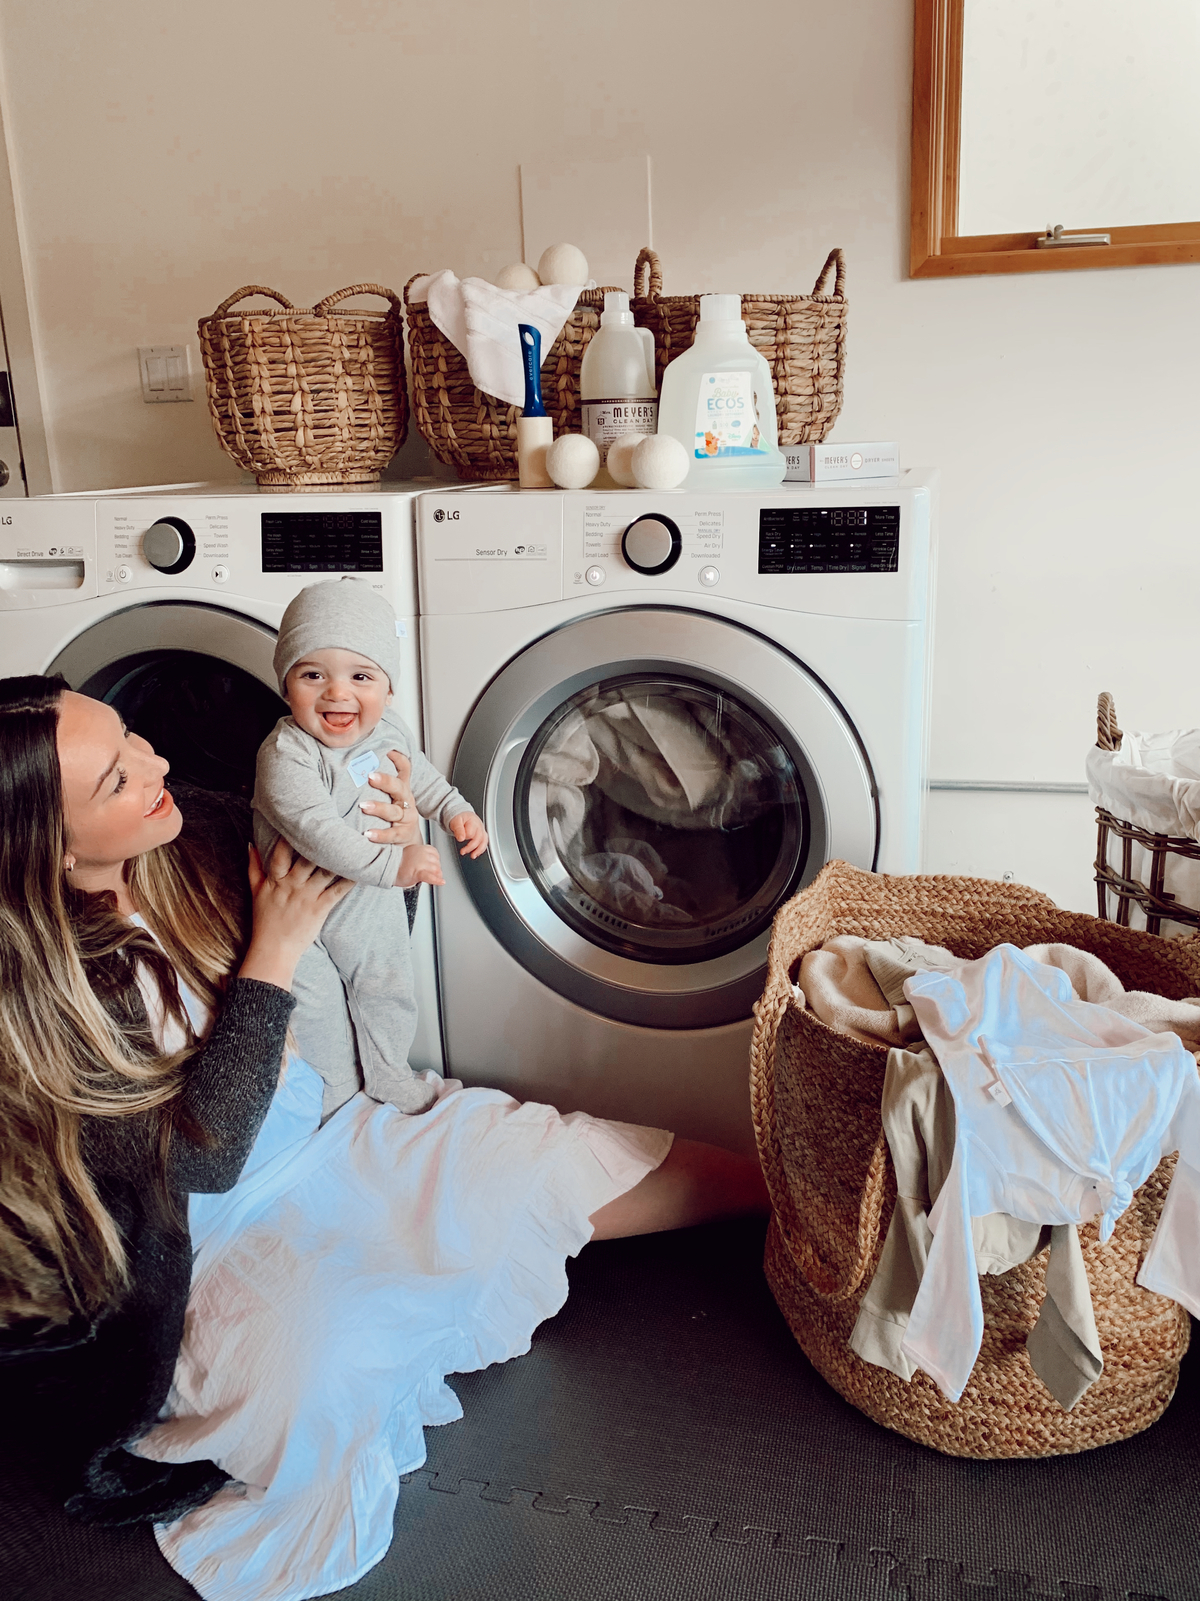 Laundry Storage by popular San Francisco lifestyle blog, Just Add Glam: image of a woman sitting on her laundry room floor with her baby next to some Bed Bath and Beyond Water Hyacinth Round Basket with Handles, Bed Bath and Beyond Bee & Willow™ Home Jute Laundry Hamper in Natural, Bed Bath and Beyond Baby ECOS Free & Clear Disney® 100-Ounce Laundry Detergent, Bed Bath and Beyond Woolzies® Wool Dryer Balls, Bed Bath and Beyond Evercare Lint Remover Bonus Pack, and Bed Bath and Beyond Wamsutta® Icon PimaCott® Bath Towel Collection.